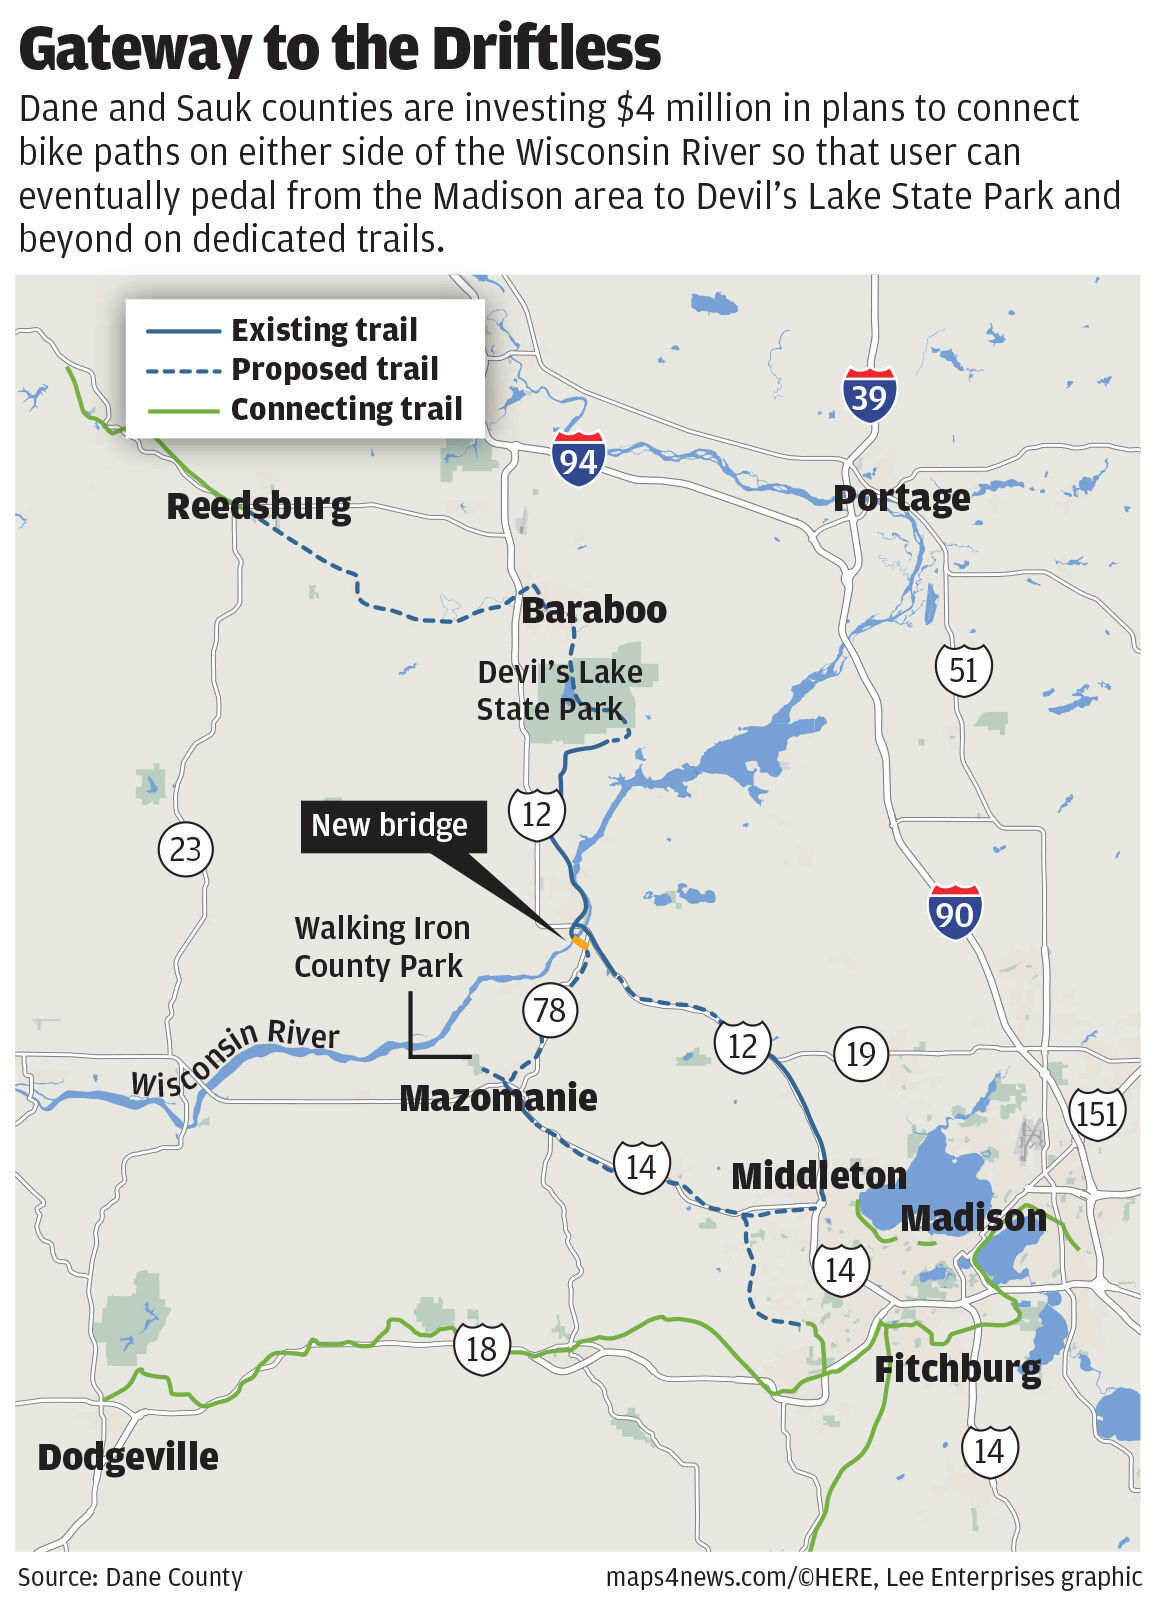 Driftless gateway: proposed trail connections across Wisconsin River